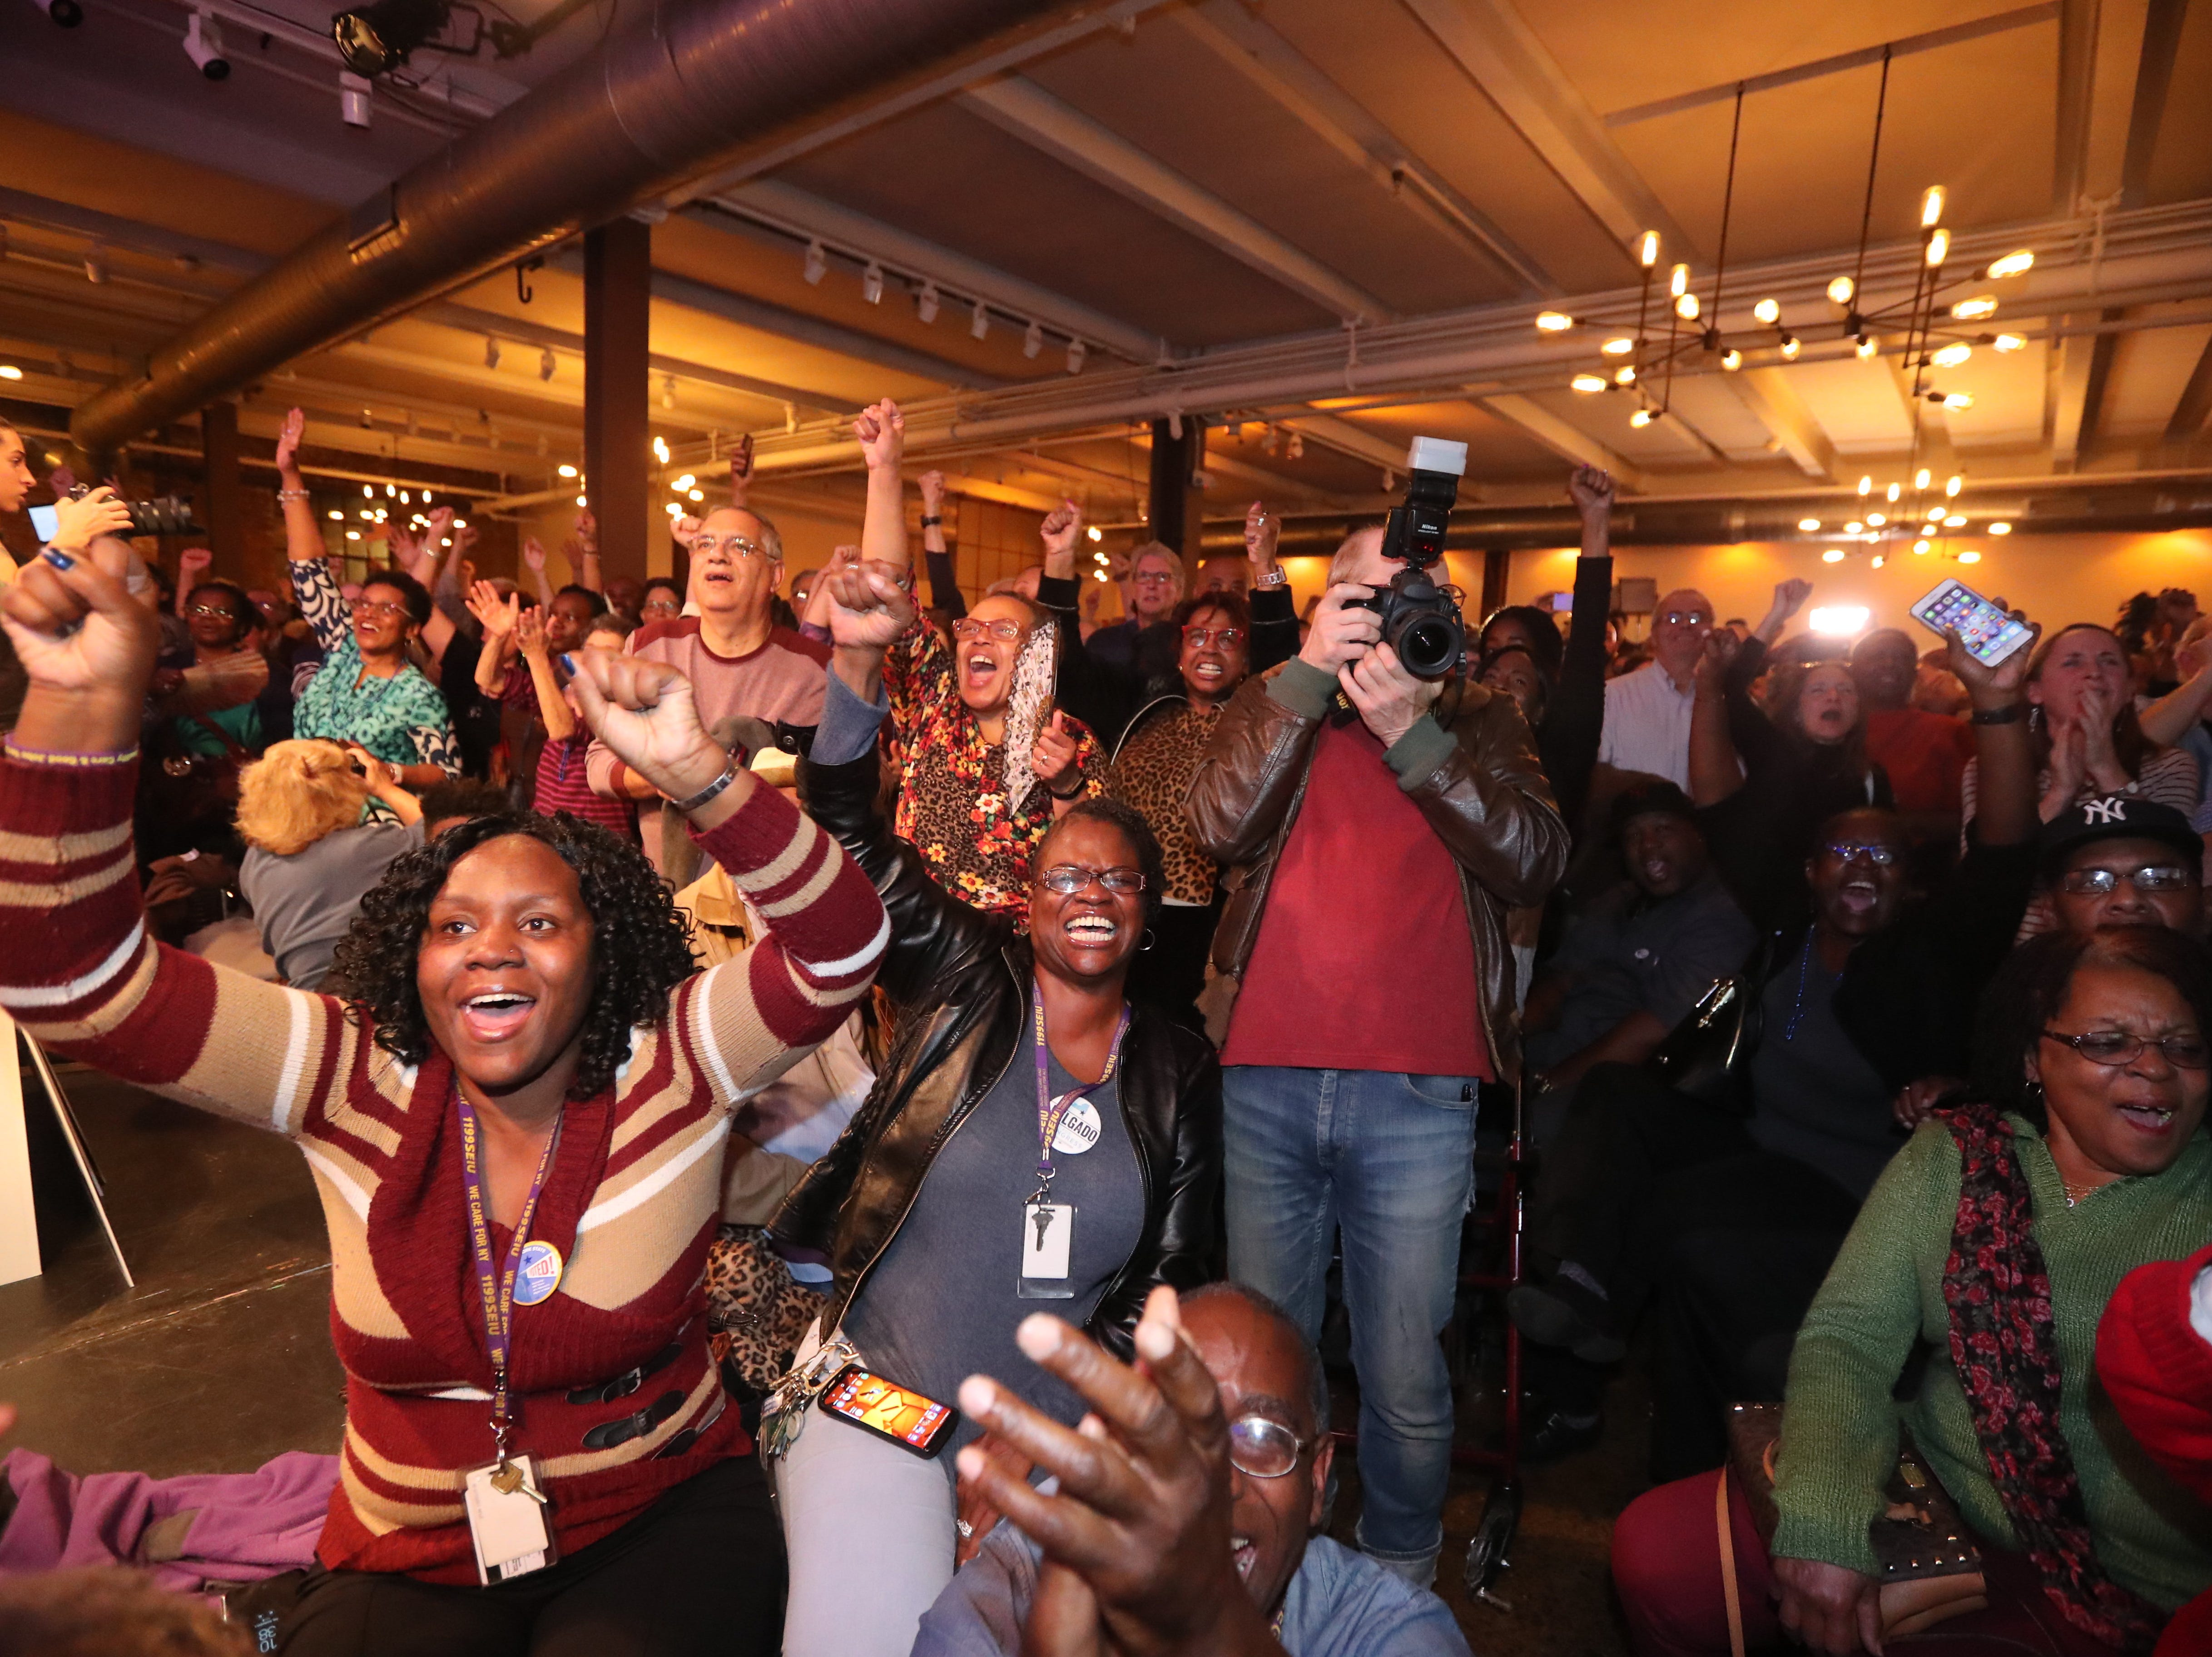 Supporters of congressional candidate Antonio Delgado, cheer upon hearing that the Democrats had retaken the House of Representatives while awaiting election results at the Senate Garage in Kingston, N.Y. Nov. 6, 2018. Delgado was running against incumbent Republican John Faso for New York's 19th congressional district seat.